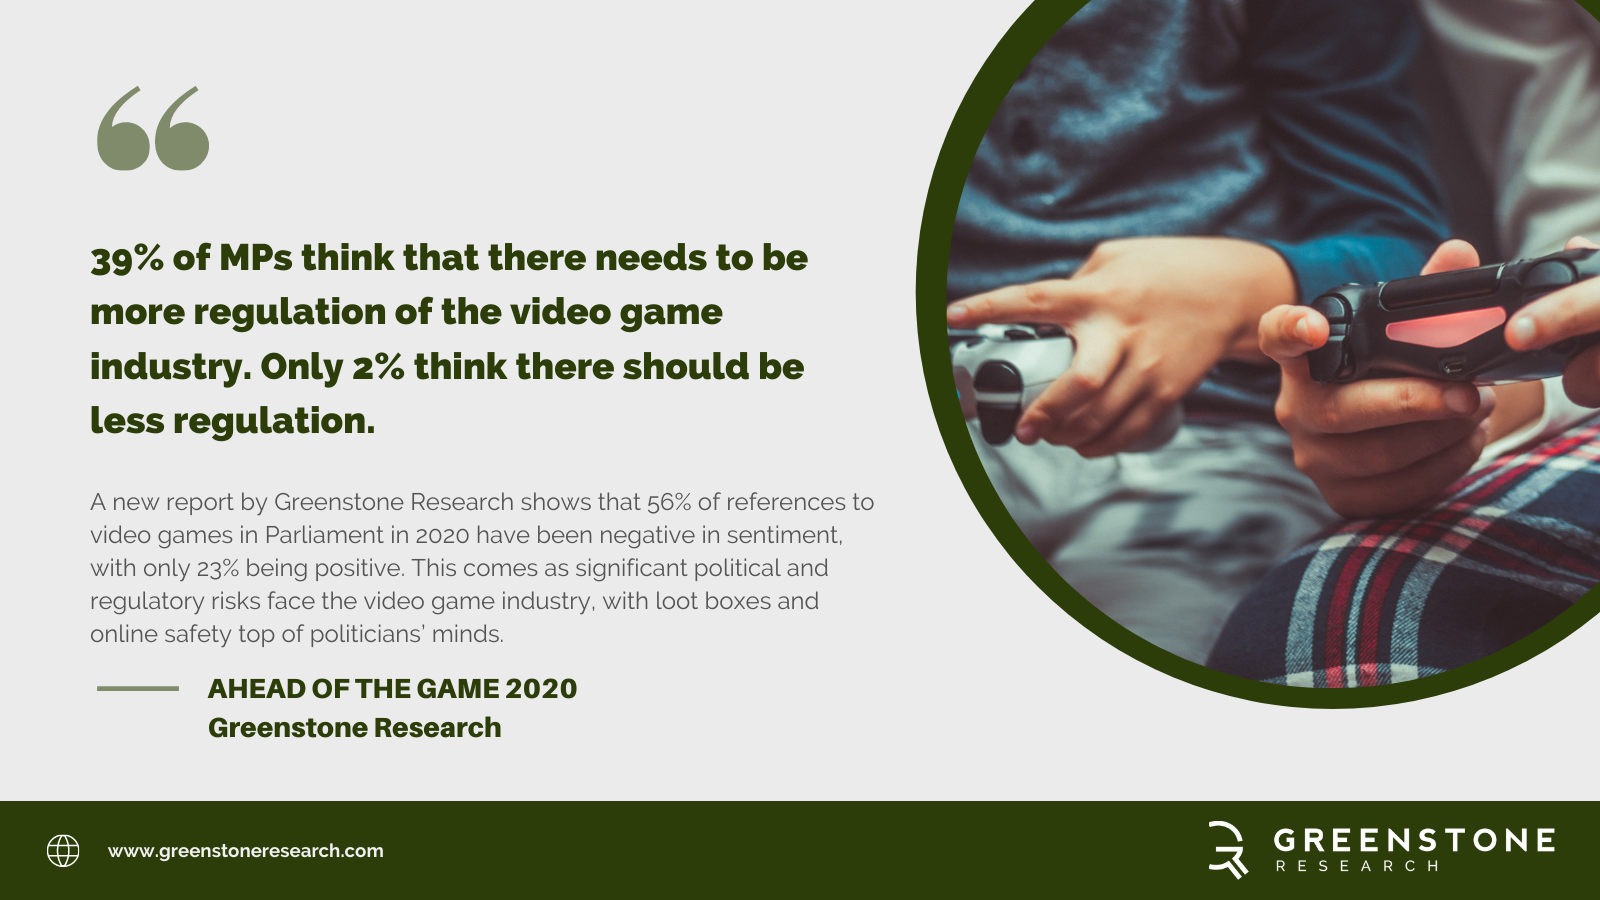 Greenstone Research Finds That One Third Of Mps Want Increased Regulation For Video Game Businesses